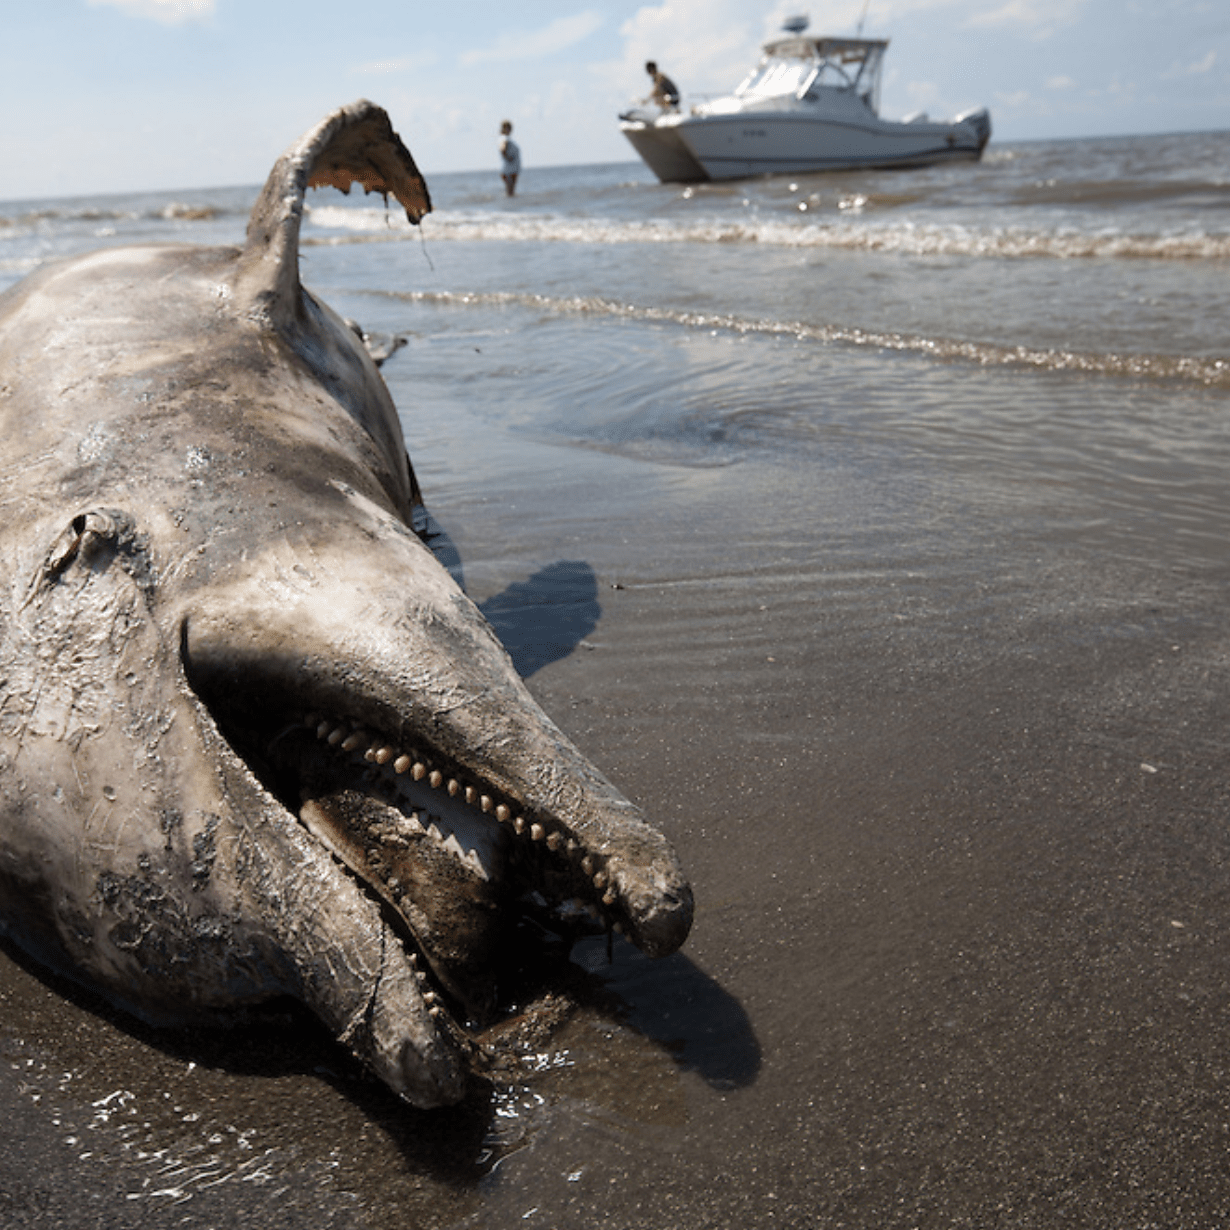 A dolphin on the beach in the Gulf Coast in the months following the BP oil disaster. Some scientists suspect that the use of oil dispersants contributed to widespread and lasting damage to marine life and ecosystems in the area.